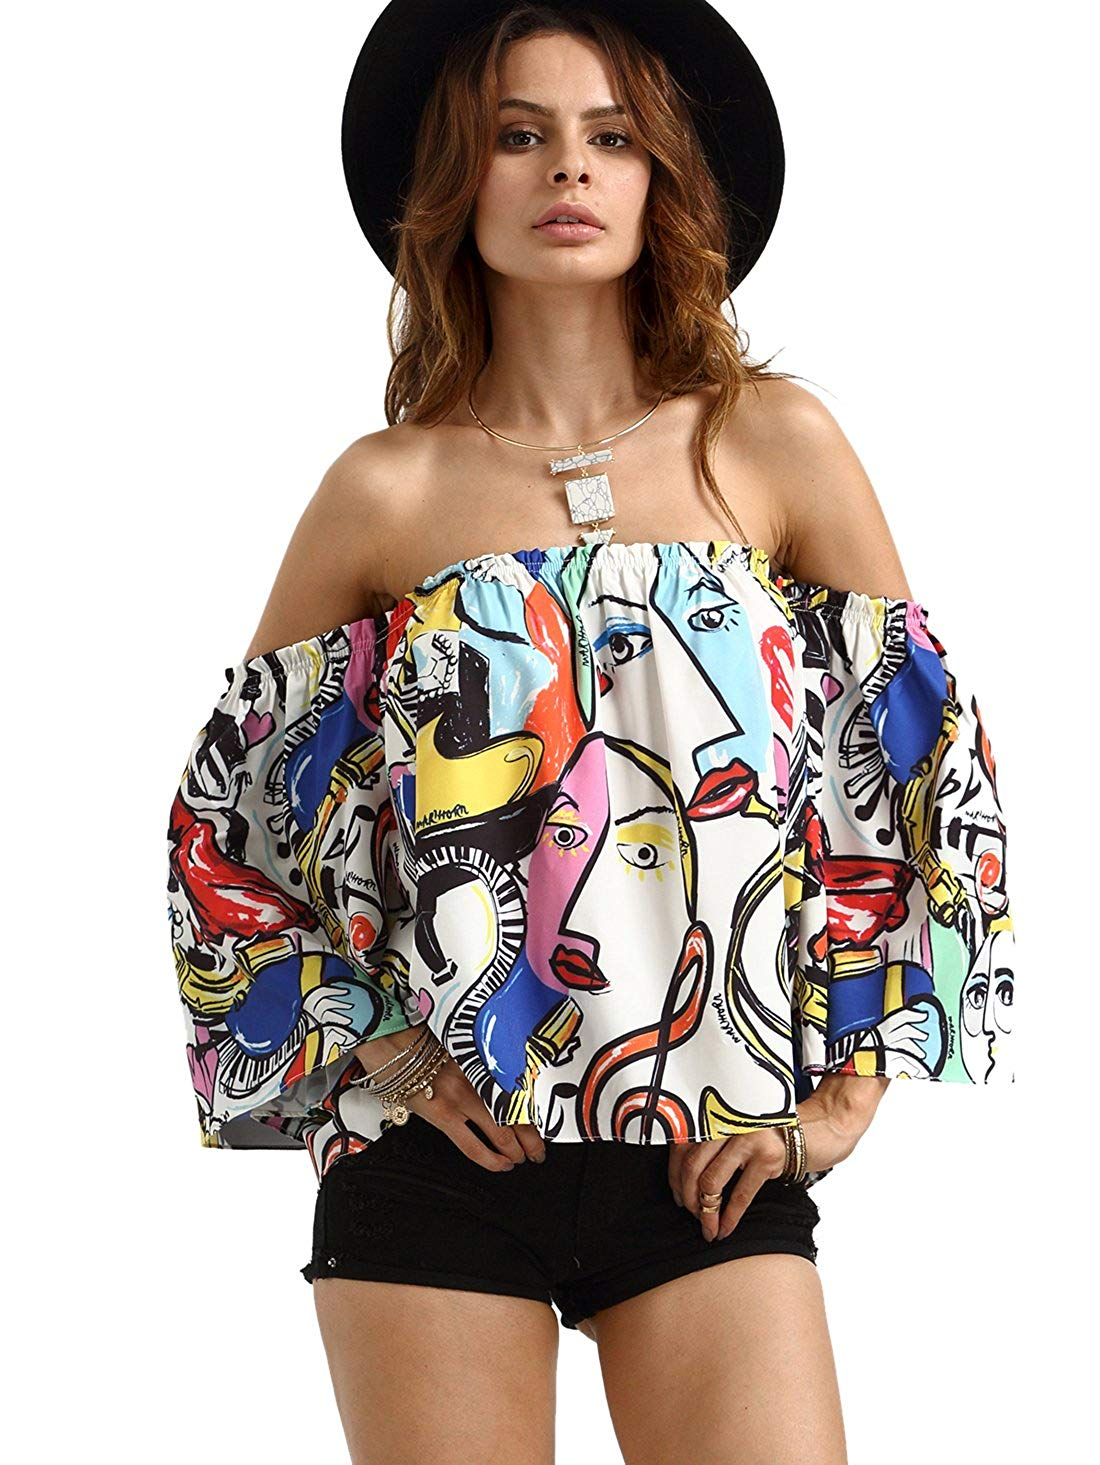 colorful funky crop top. Casual Womens Fashion and Womens Cool Trending Clothes, Dresses. #womensfashion #womensdress #summeroutfit #casualoutfit